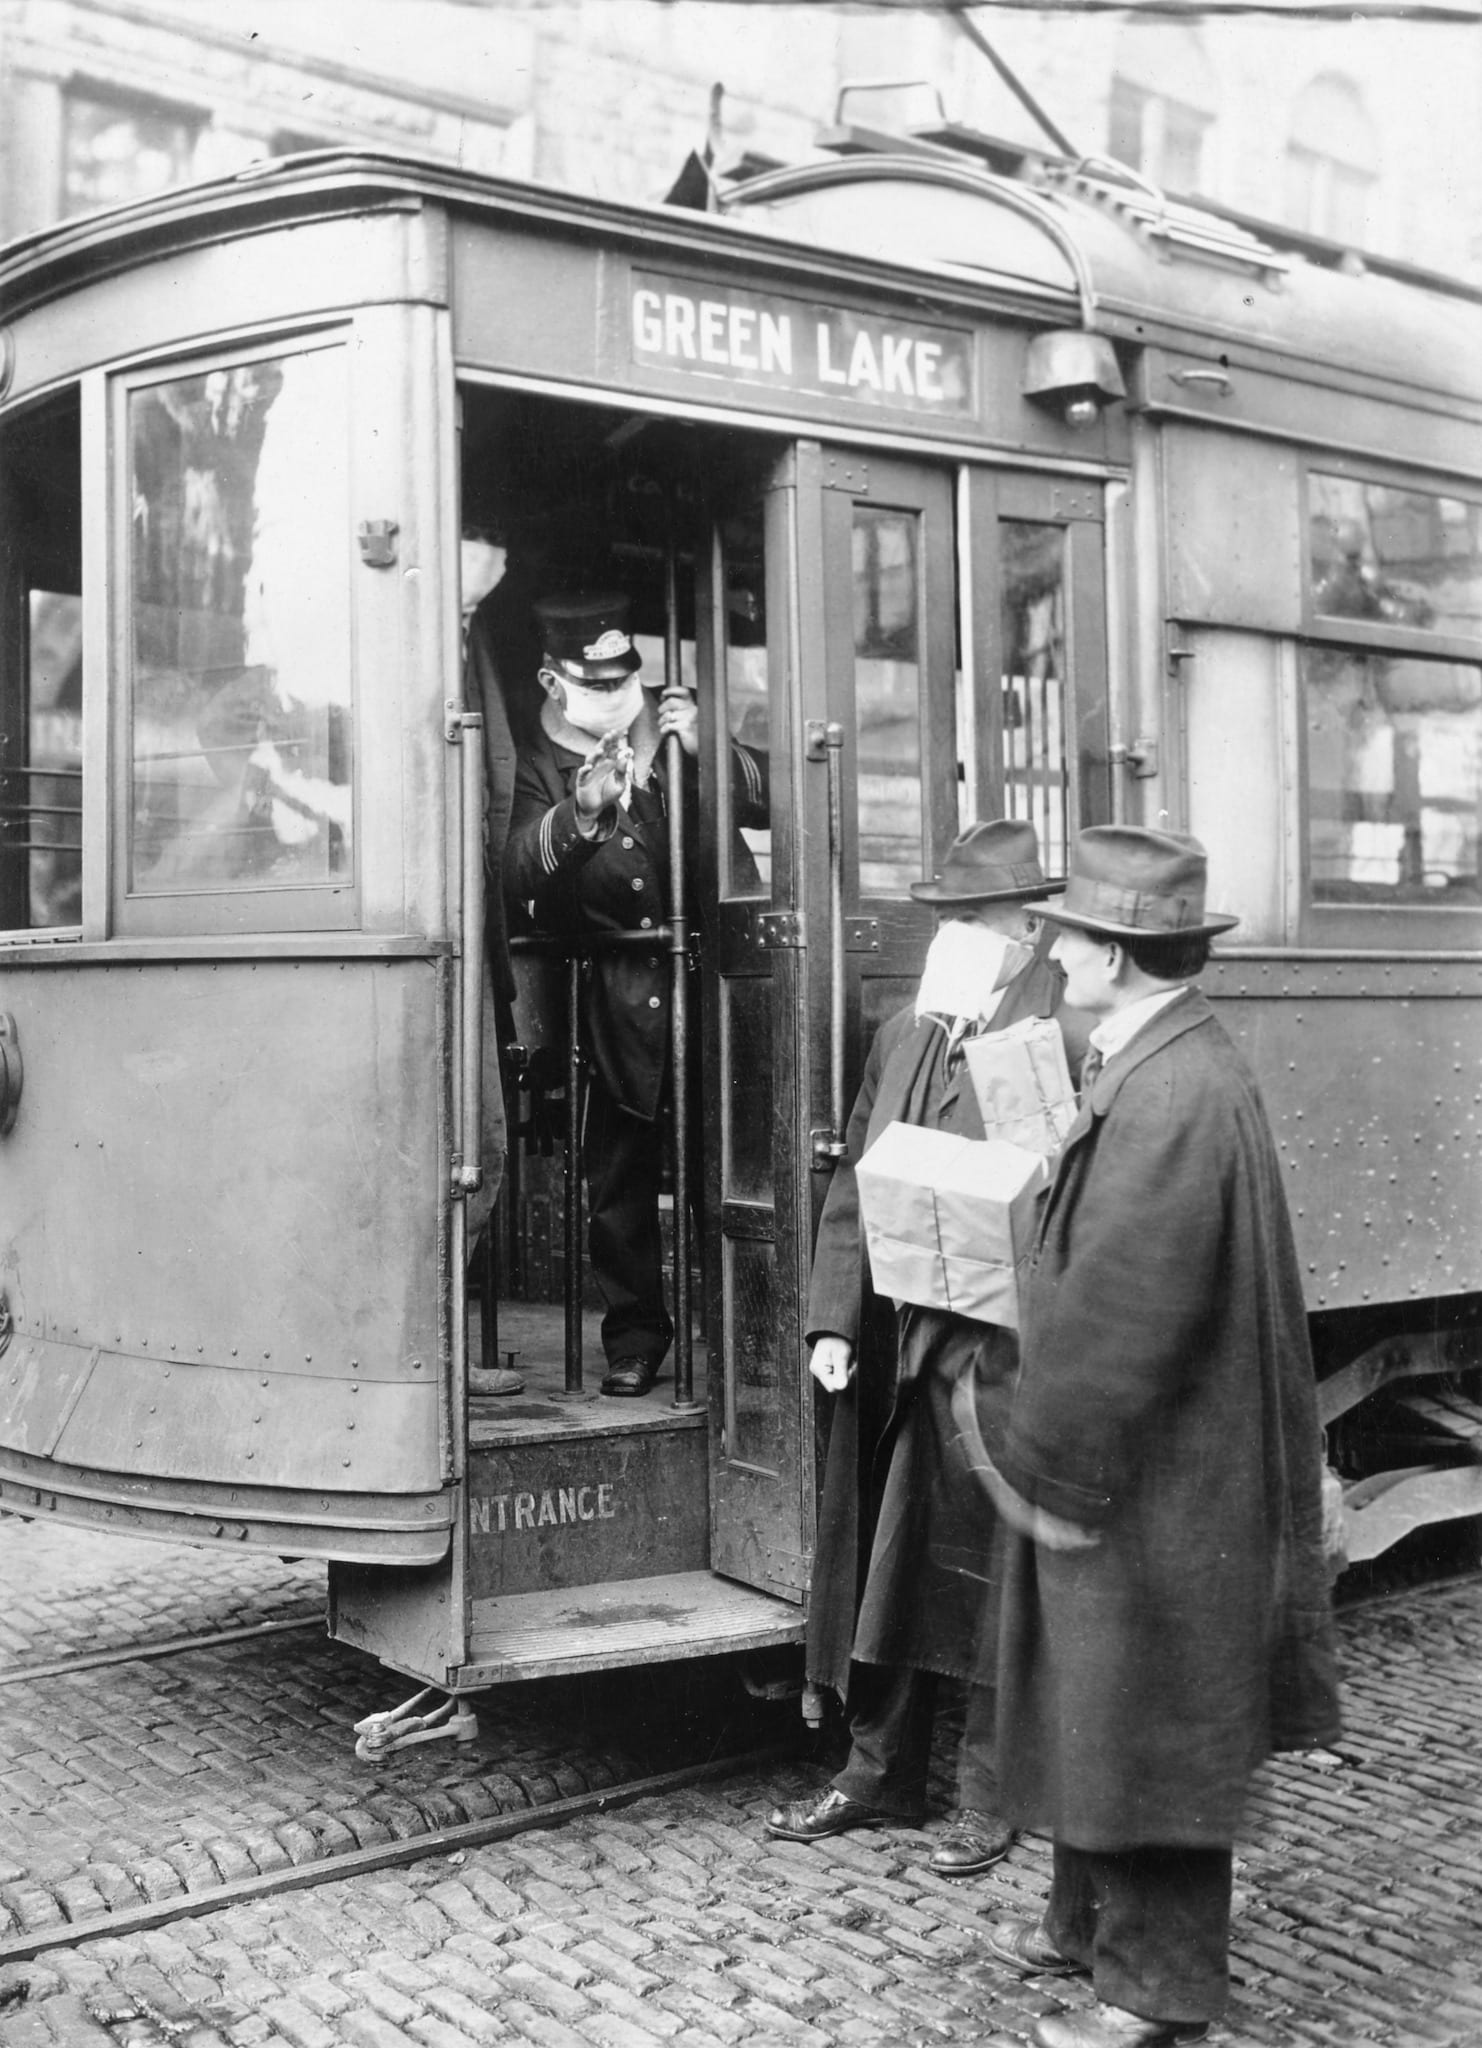 Spanish Flu 1918 Seattle Washington Trolly Passengers Wearing Masks